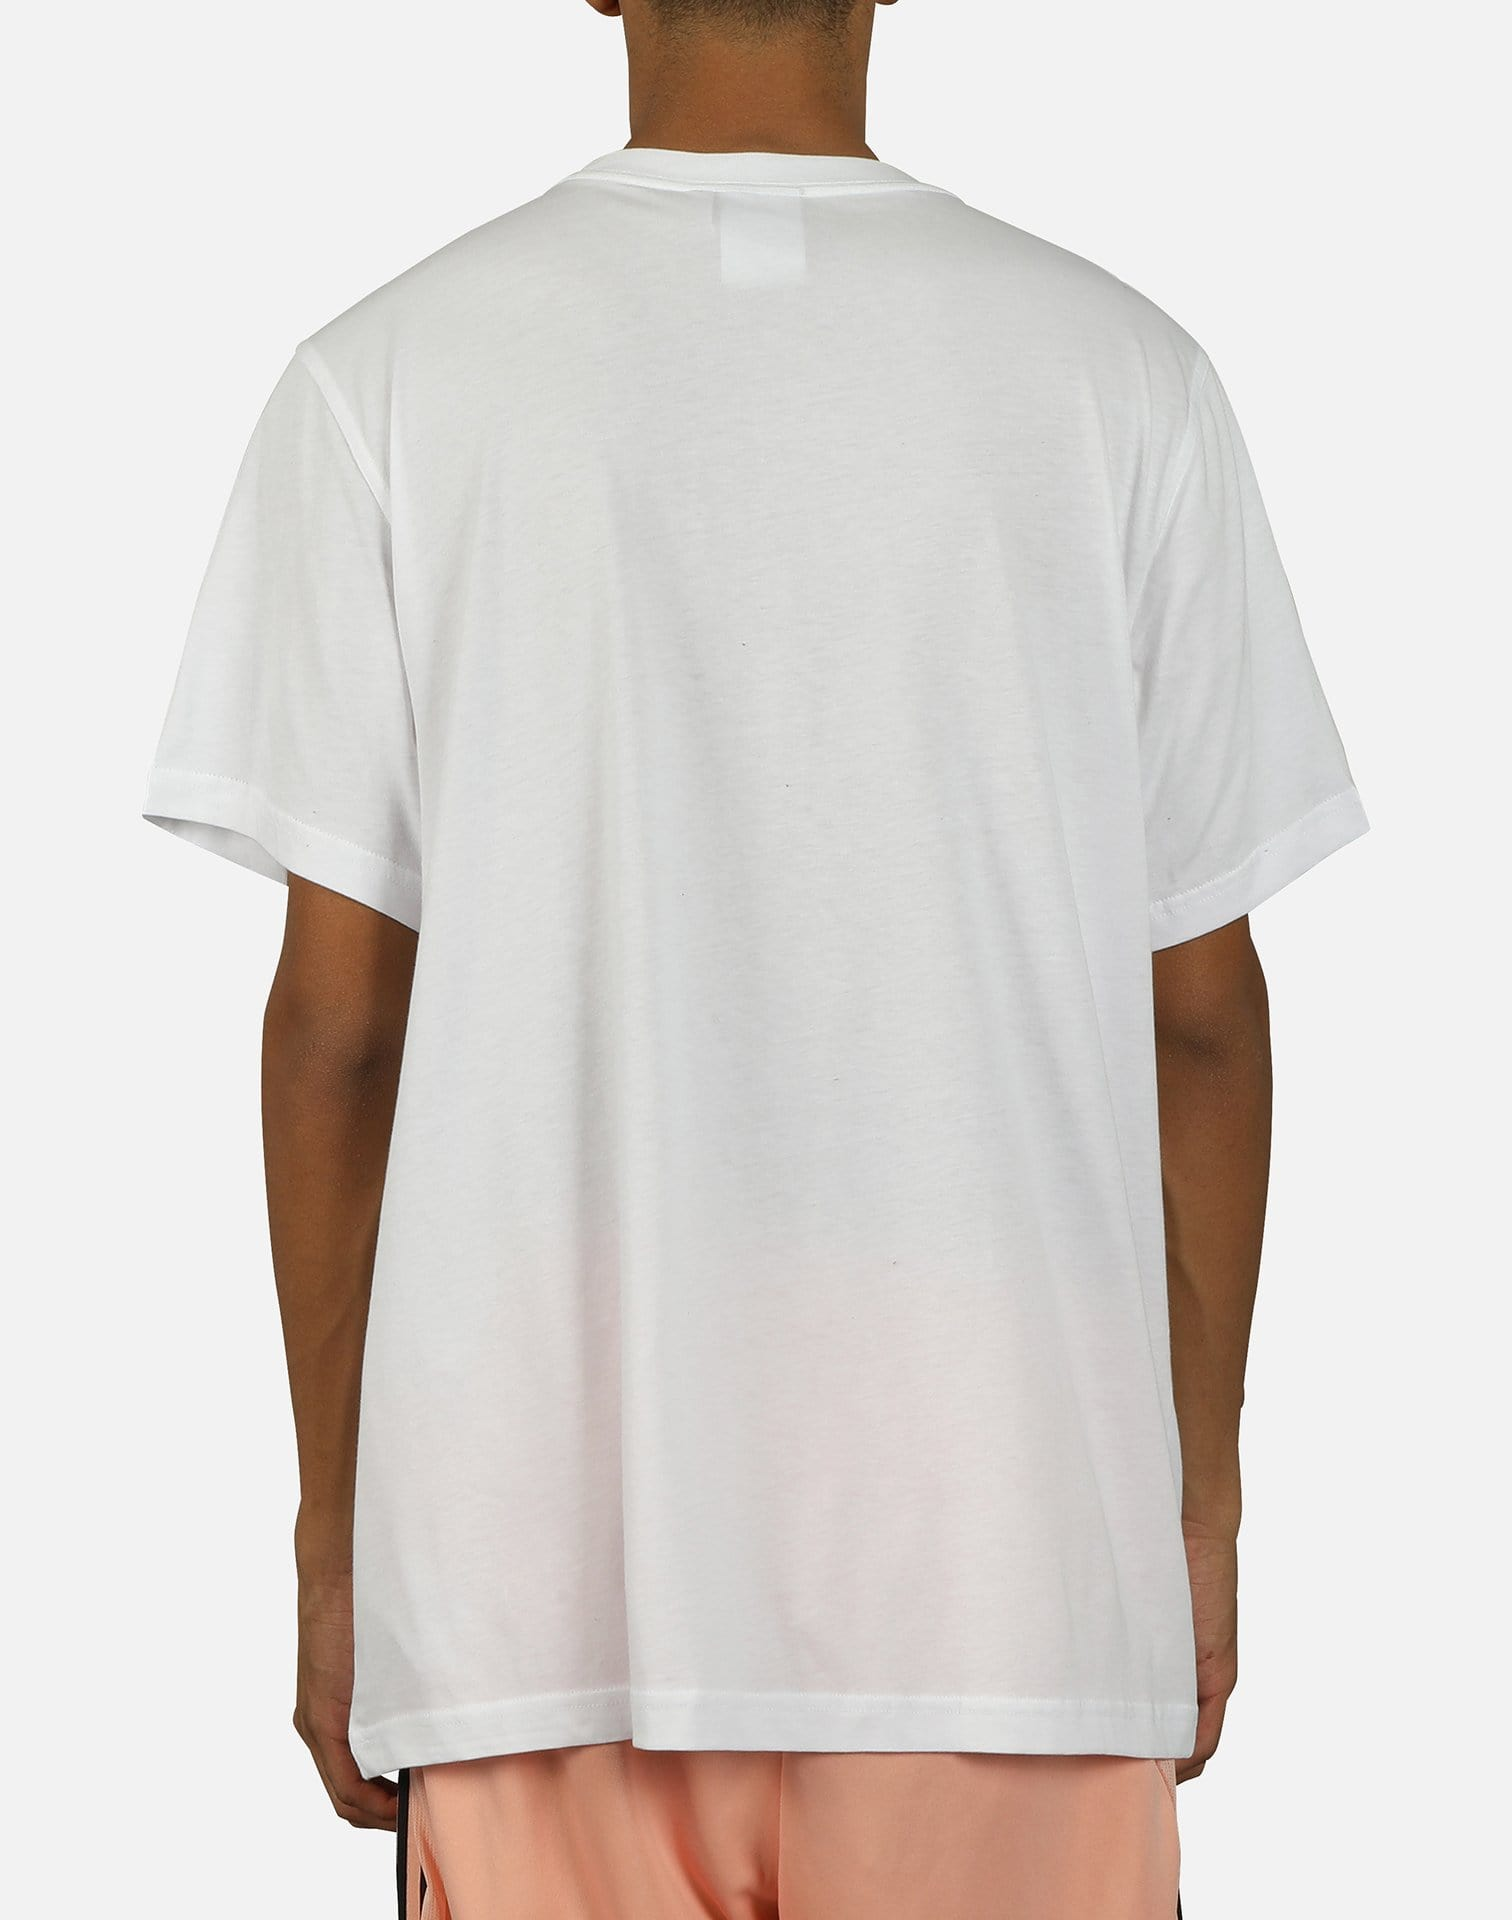 adidas Men's Filled Label Tee